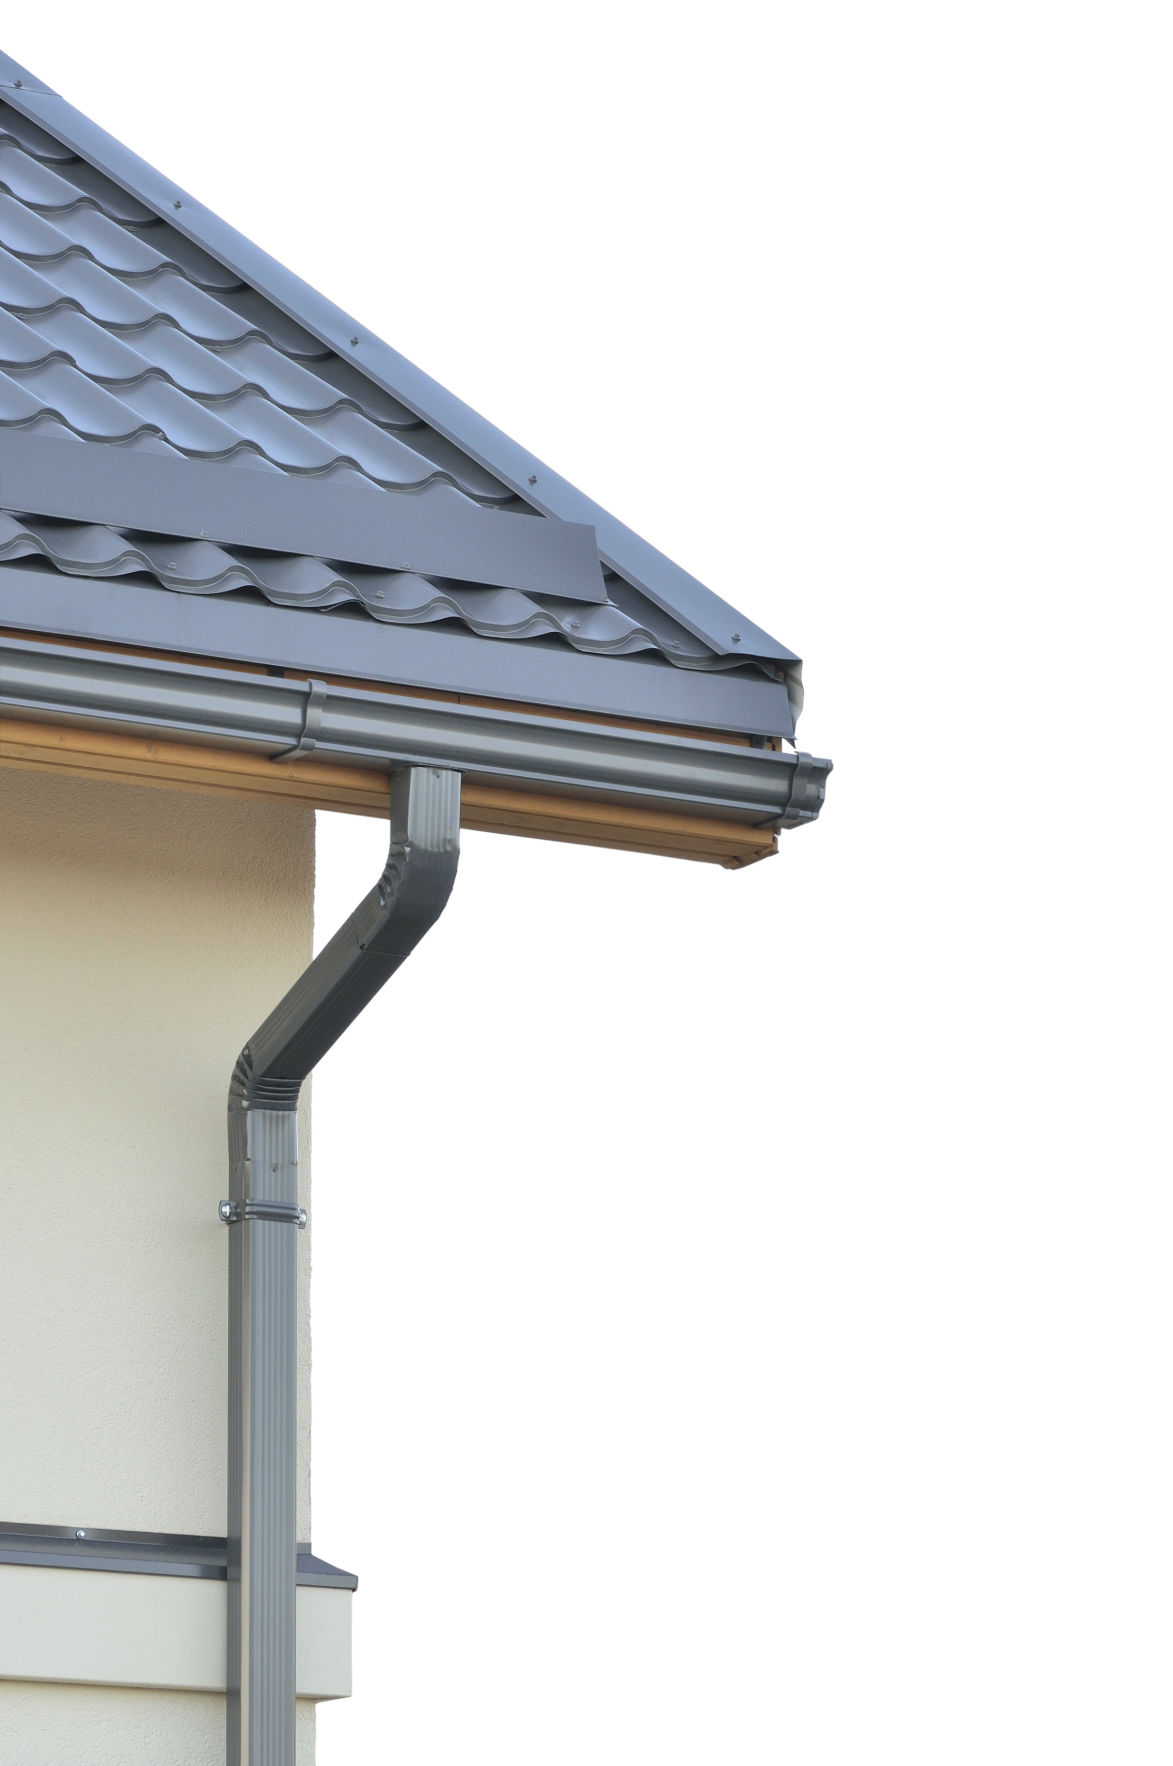 Around the house: To stay dry, check gutters and window wells